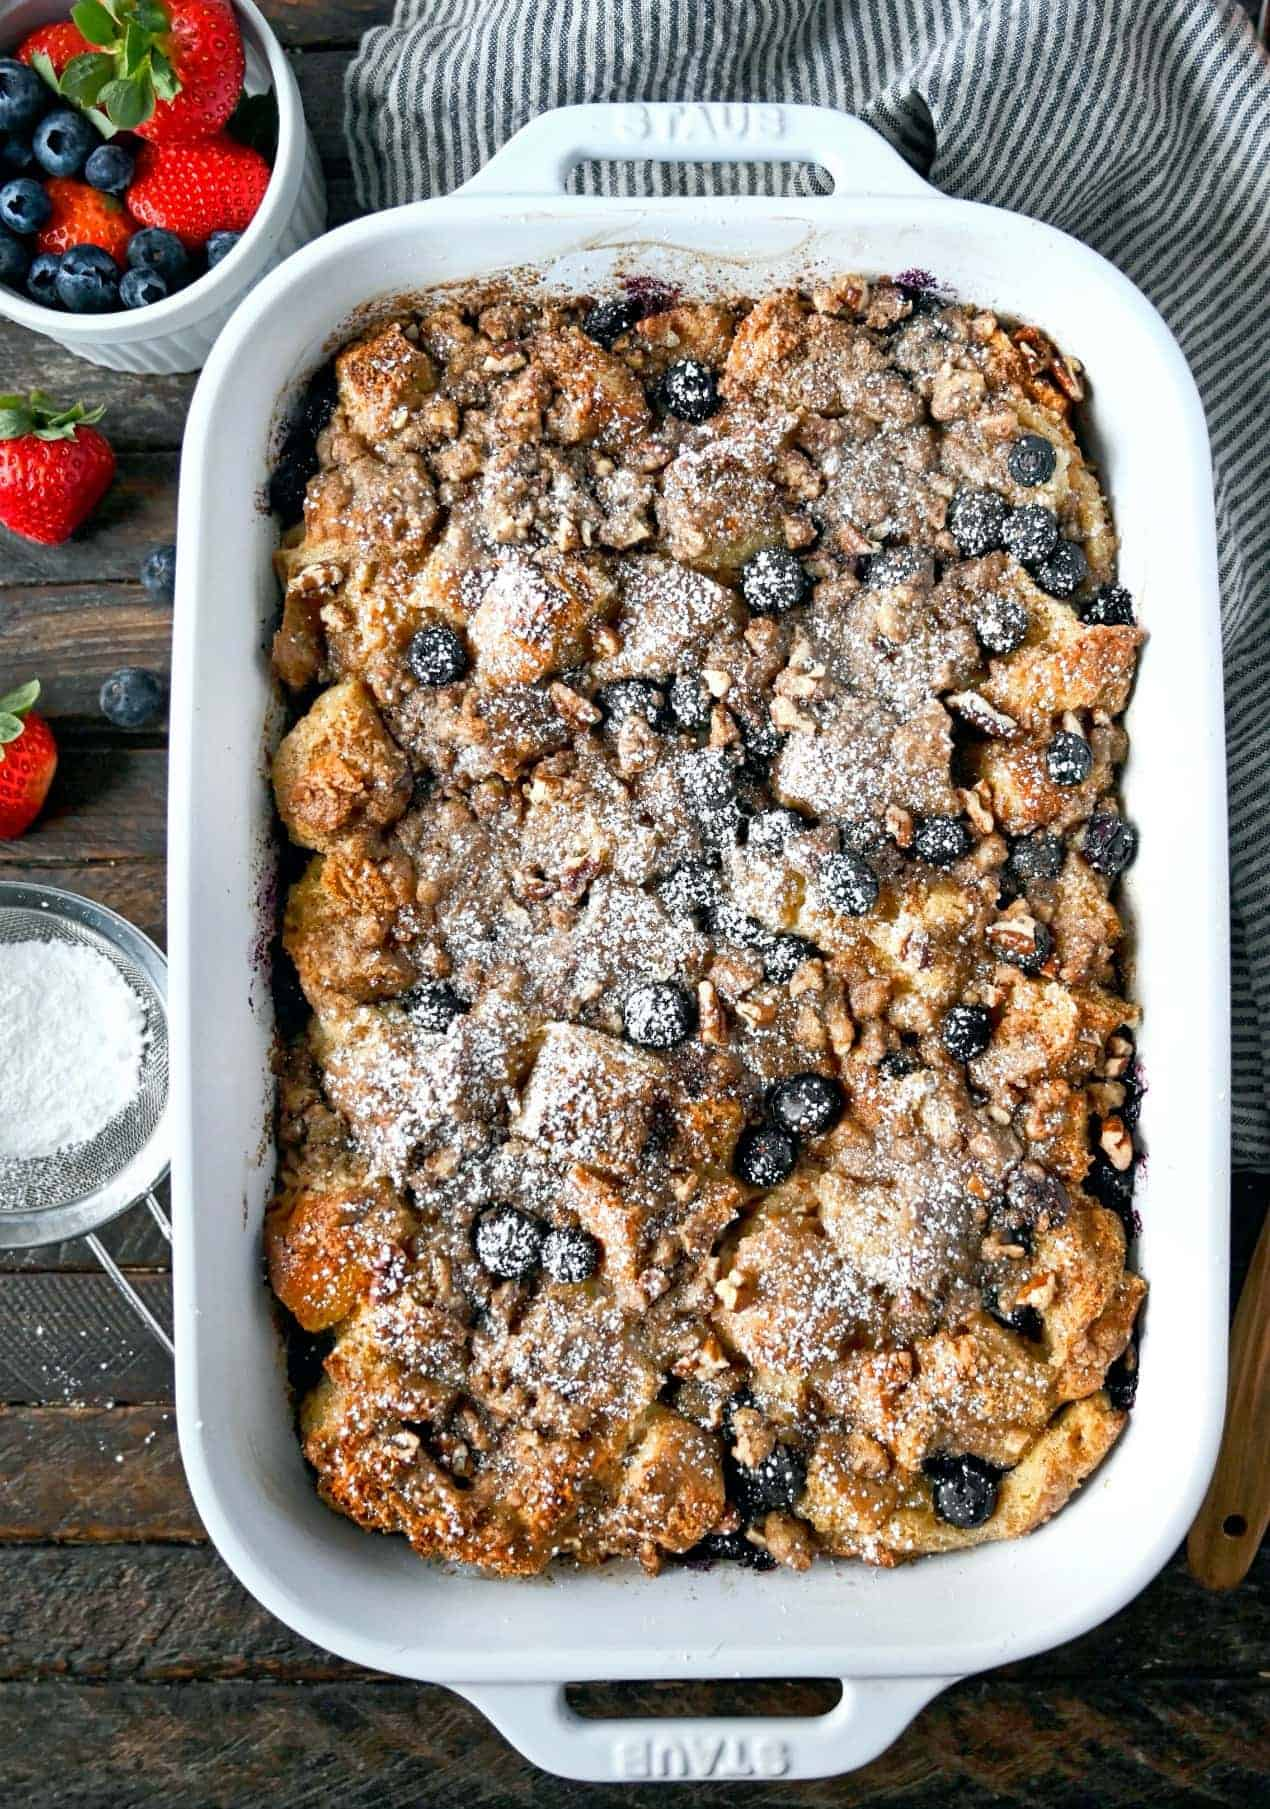 Blueberry french toast casserole in a white baking dish with powdered sugar sprinkled on top.